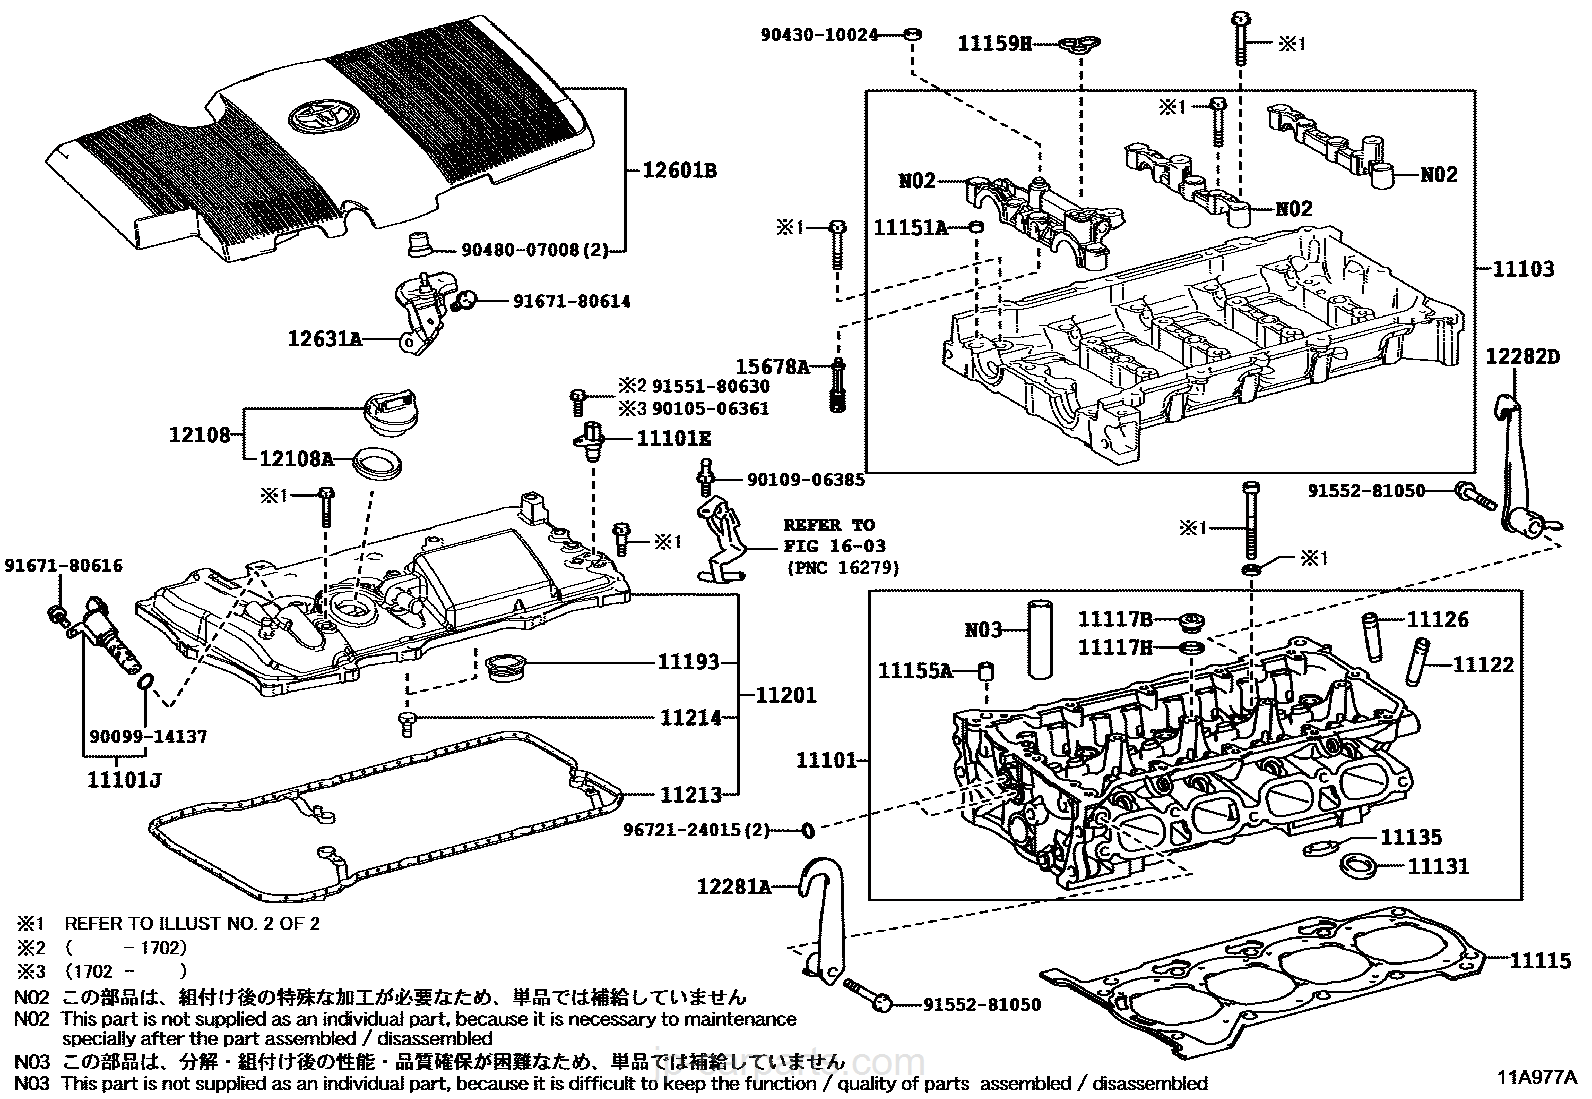 Unique Car Parts And Their Functions With Pictures Illustration ...